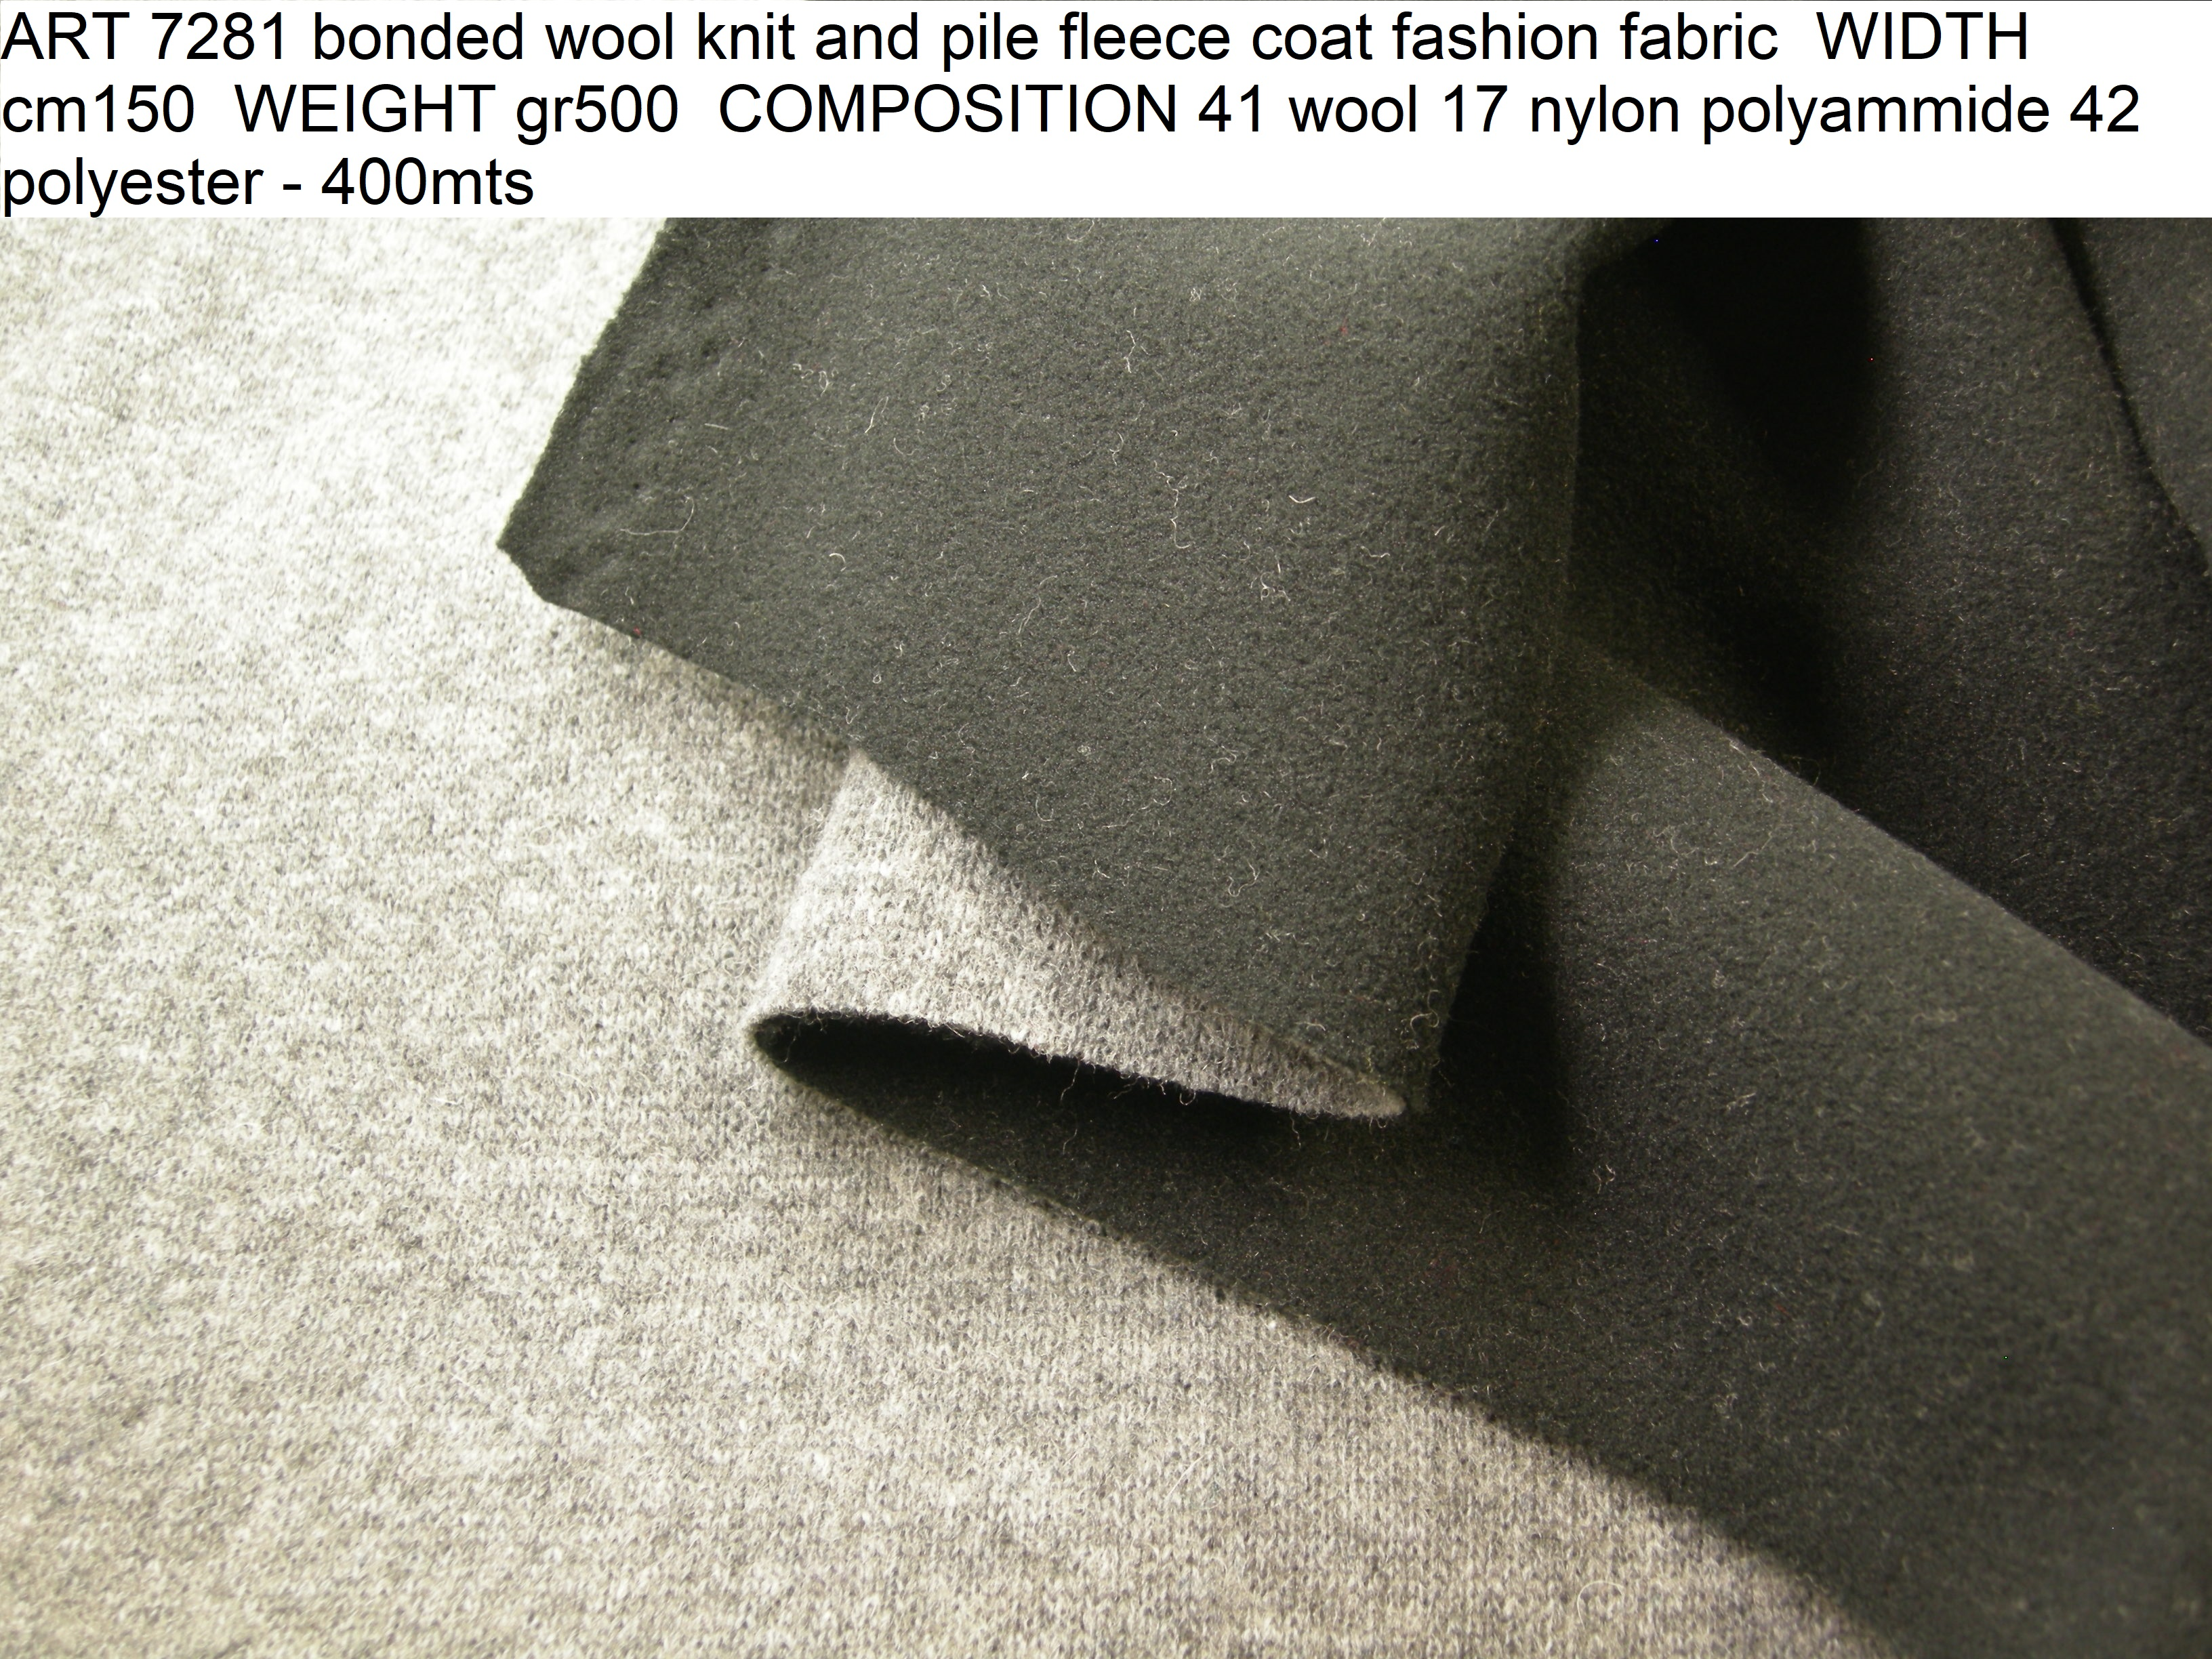 ART 7281 bonded wool knit and pile fleece coat fashion fabric WIDTH cm150 WEIGHT gr500 COMPOSITION 41 wool 17 nylon polyammide 42 polyester - 400mts